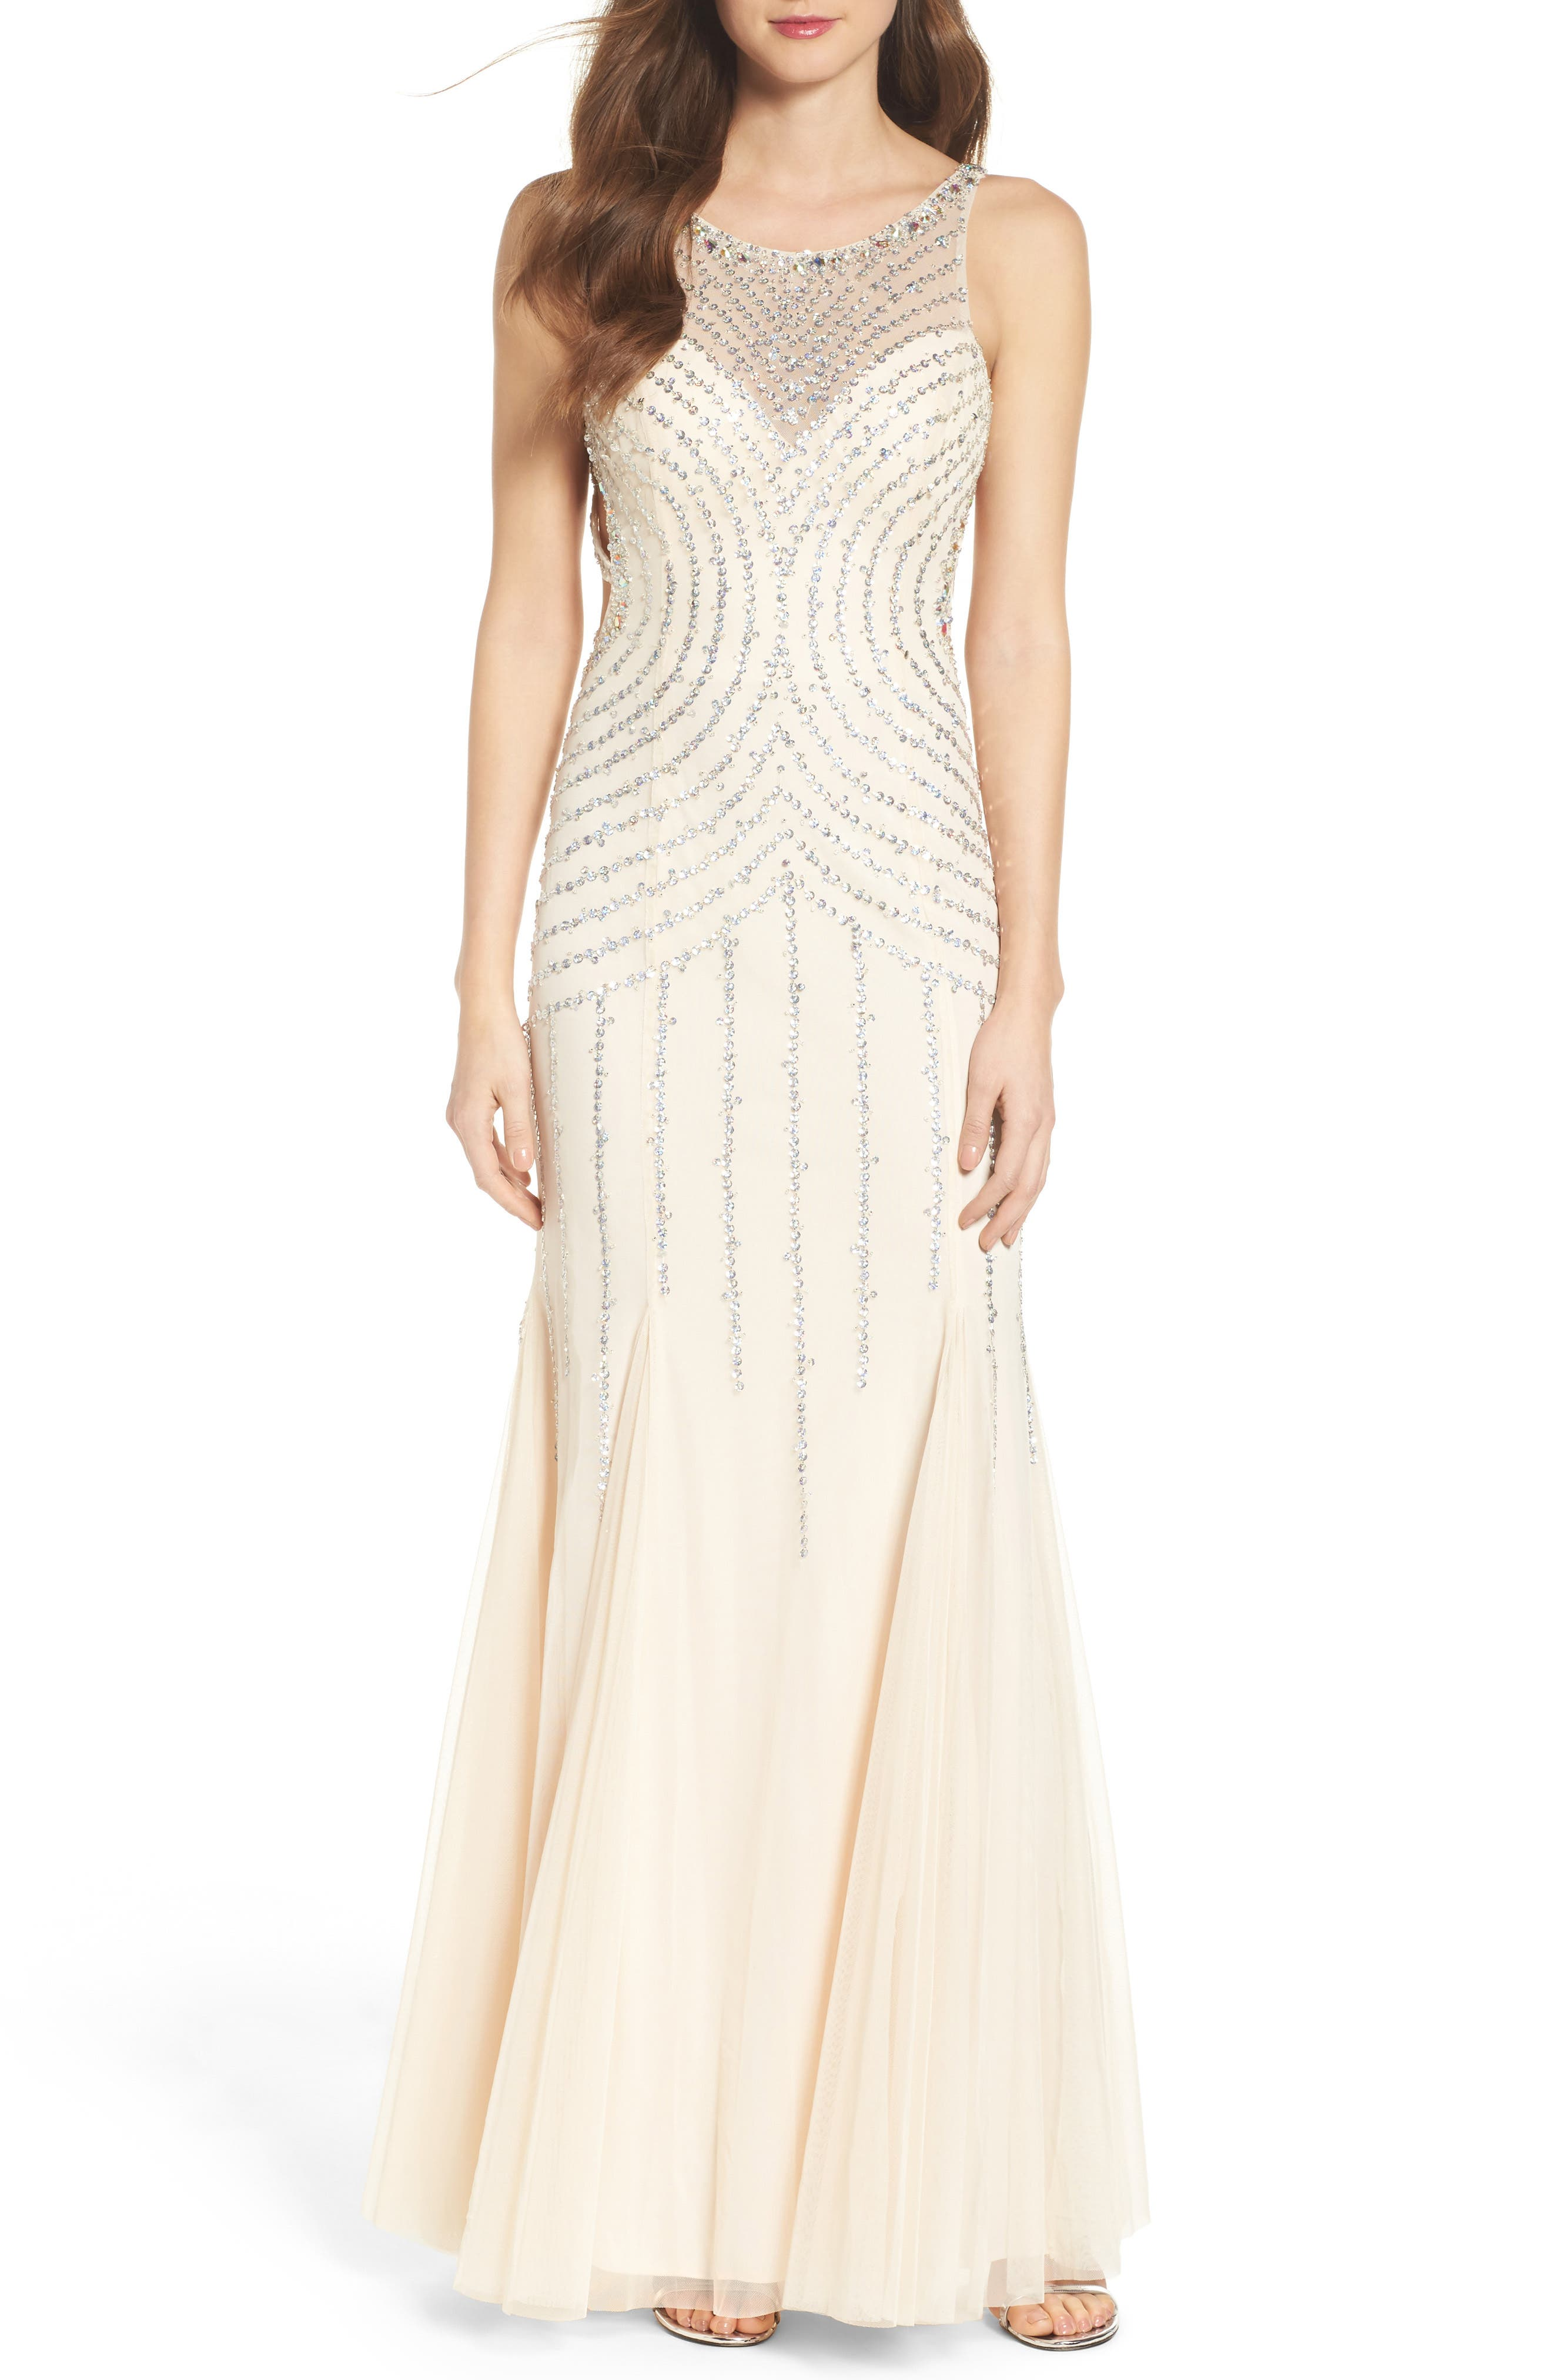 Main Image - Sean Collection Embellished Mesh Mermaid Gown